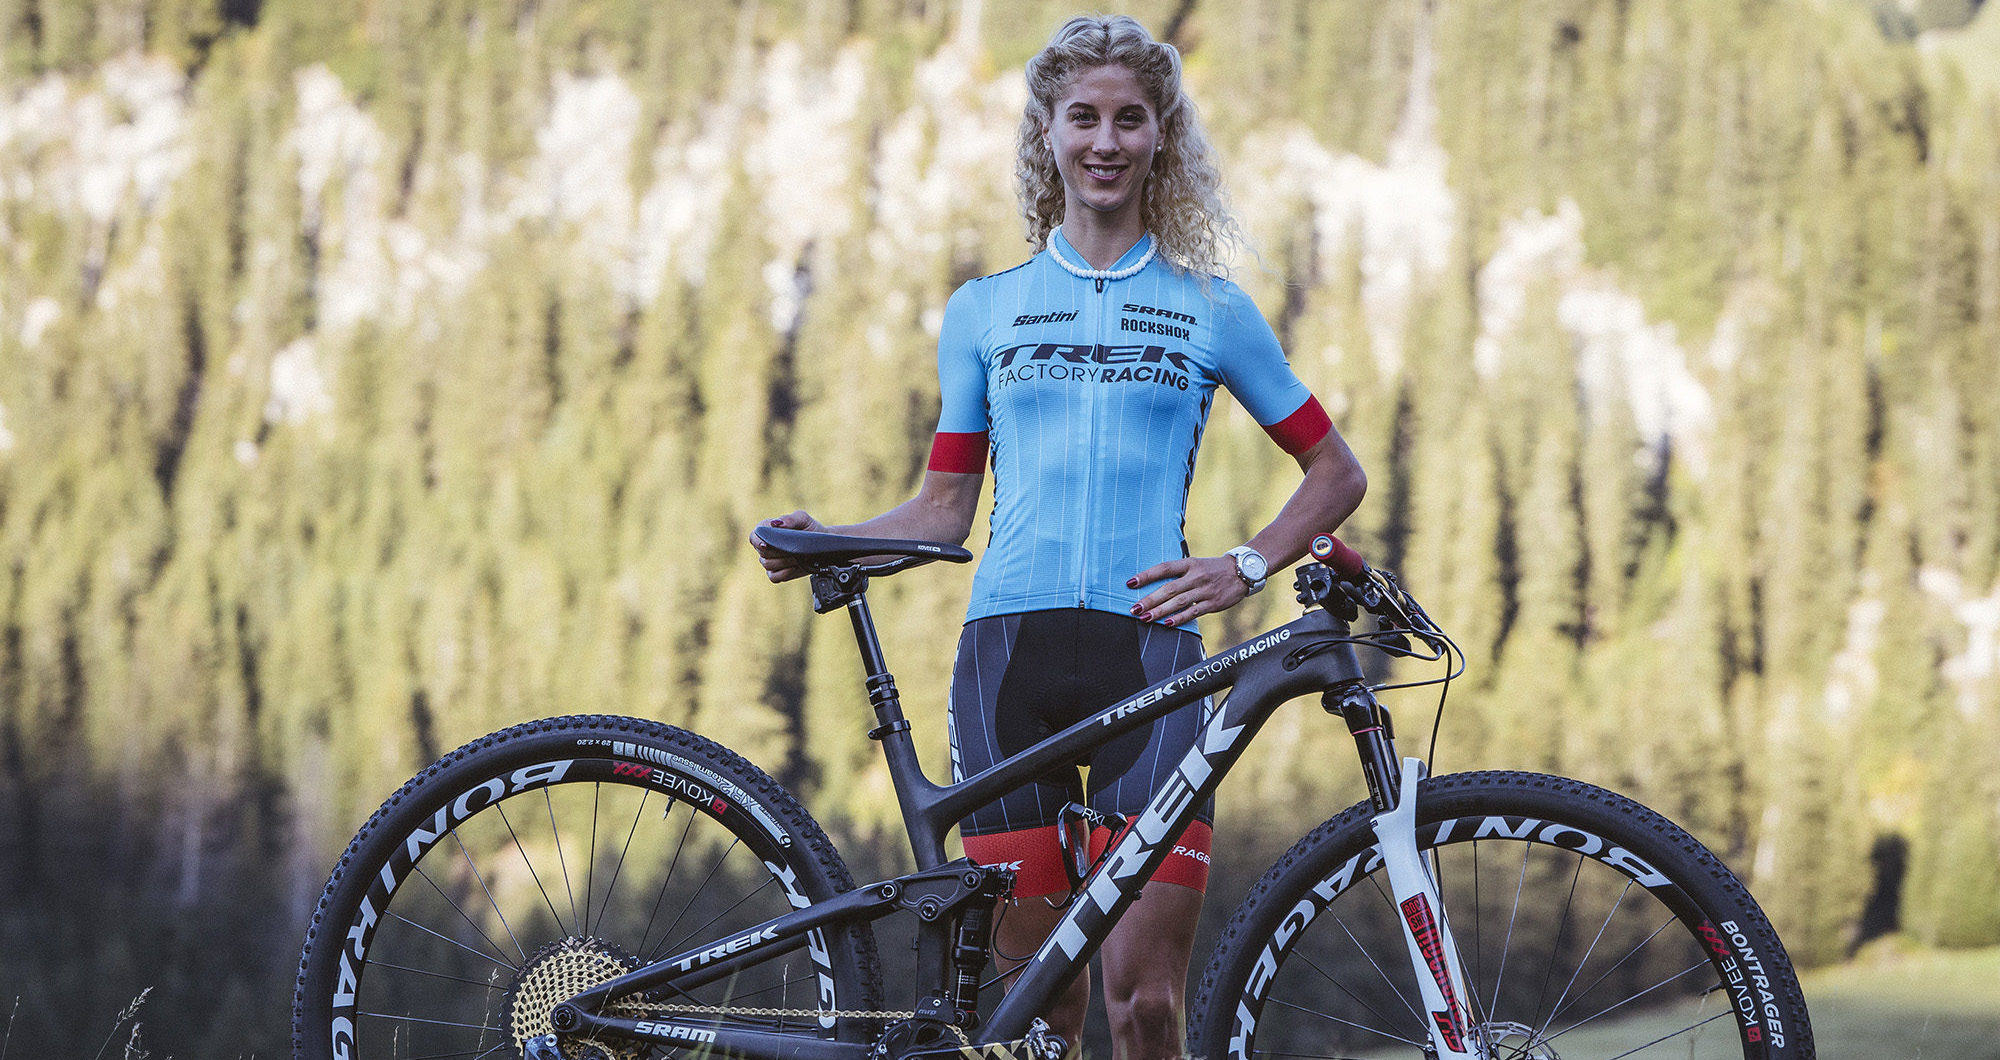 World Cup Champion Jolanda Neff Joins Trek Factory Racing